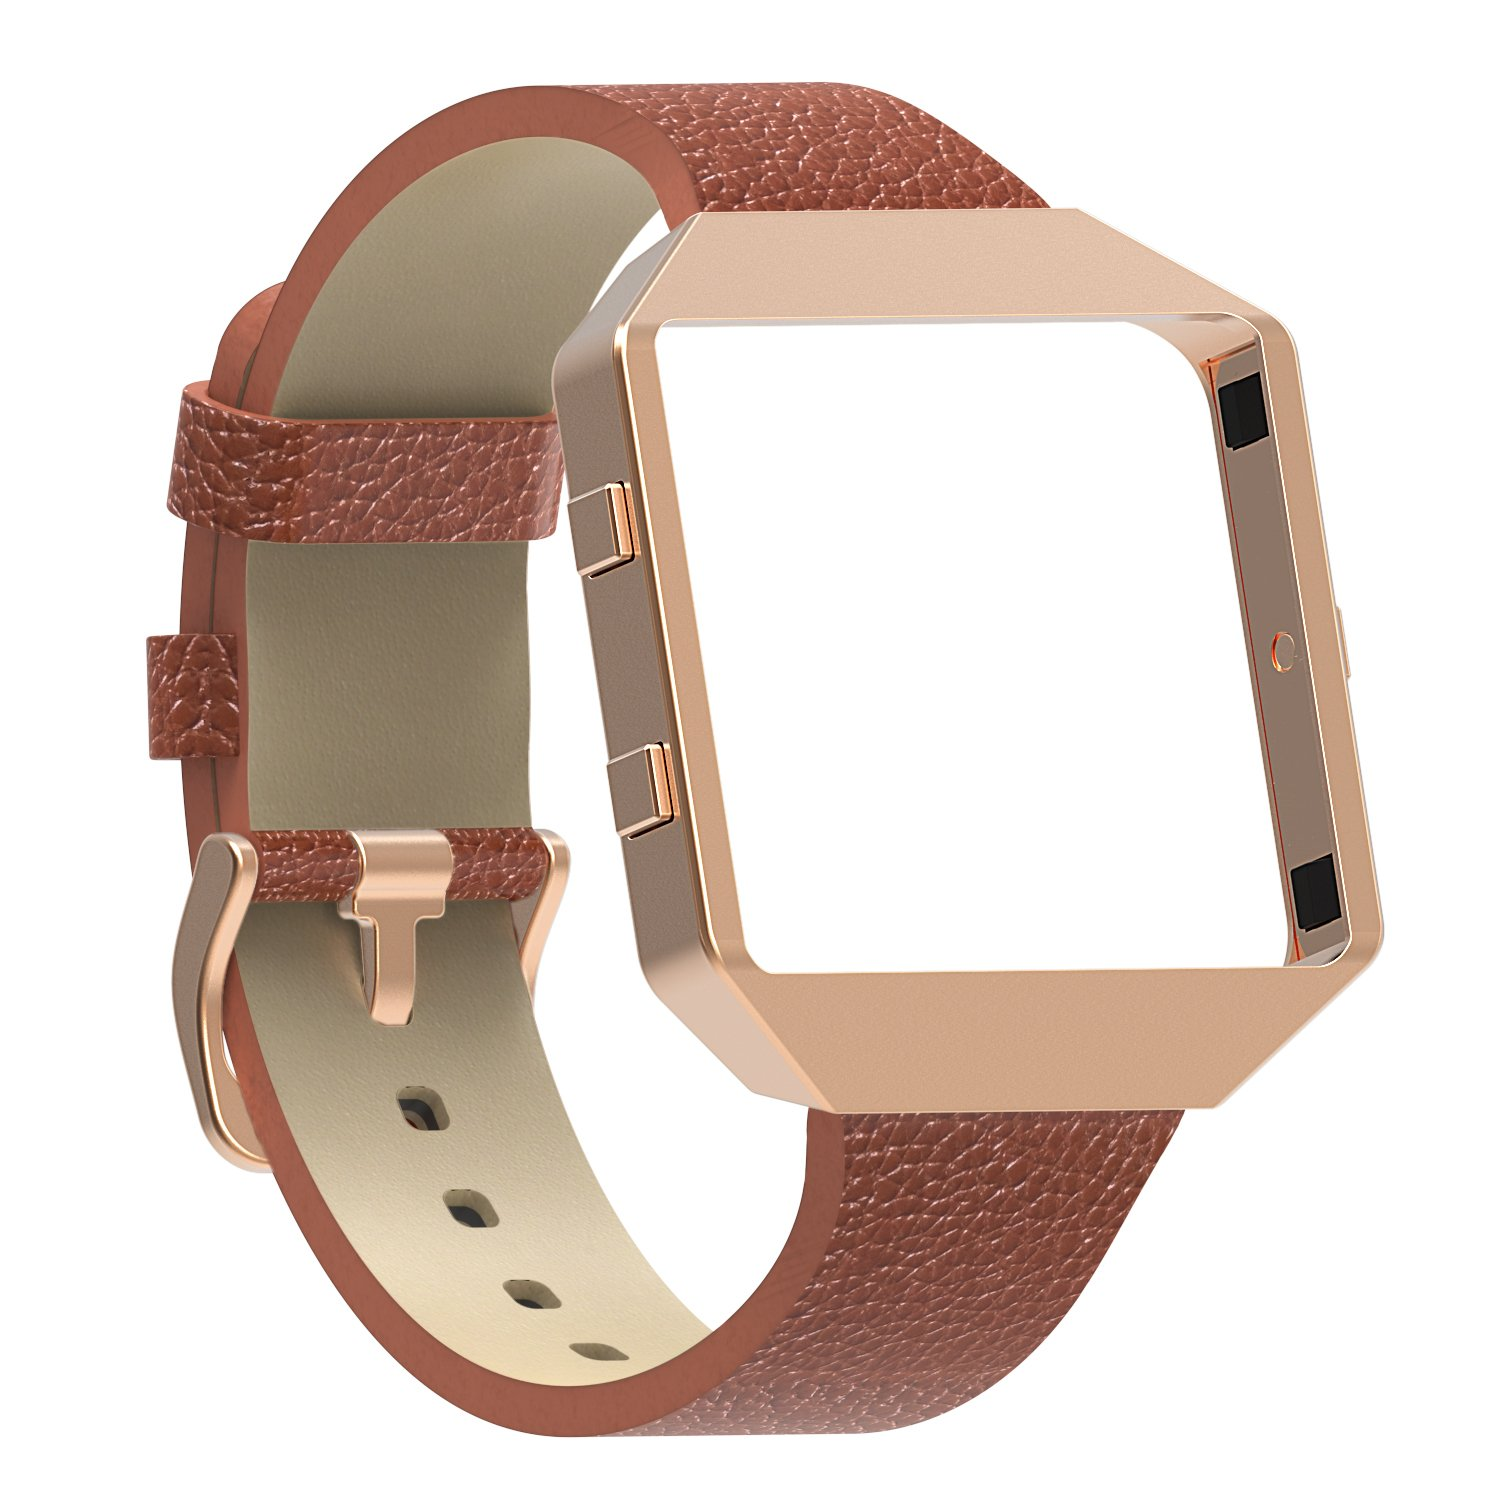 Austrake for Fitbit Blaze Bands with New Metal Frame, Replacement Leather Slim Straps with Stainless Steel Buckle for Fitbit Blaze Strap for Women Men,Brown